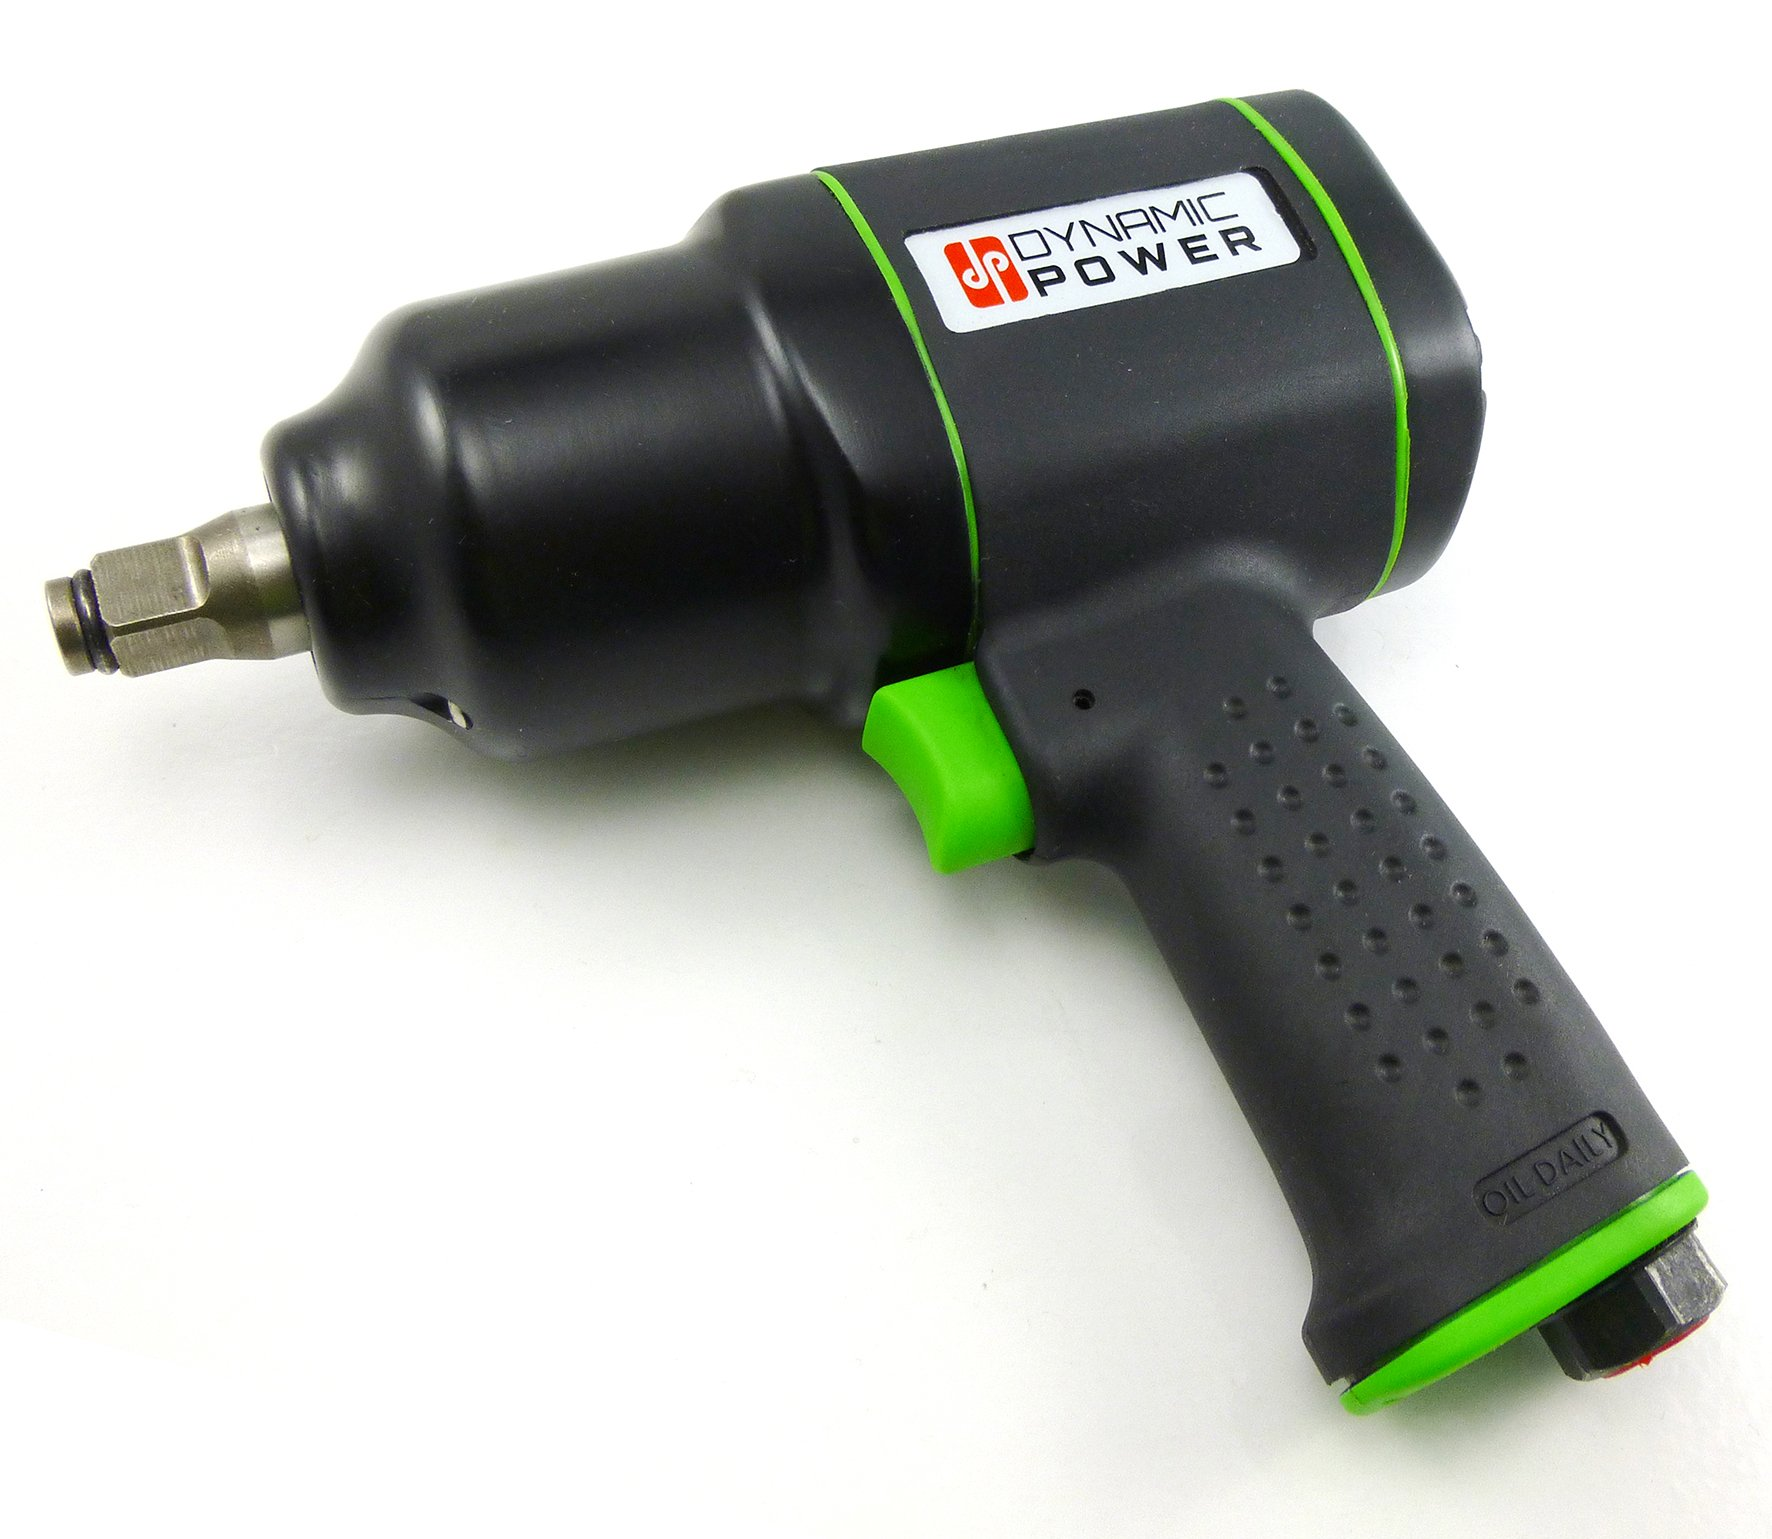 Dynamic Power 1/2 in. Air Impact Wrench Lightweight Composite Pneumatic 600ft/lb Torque